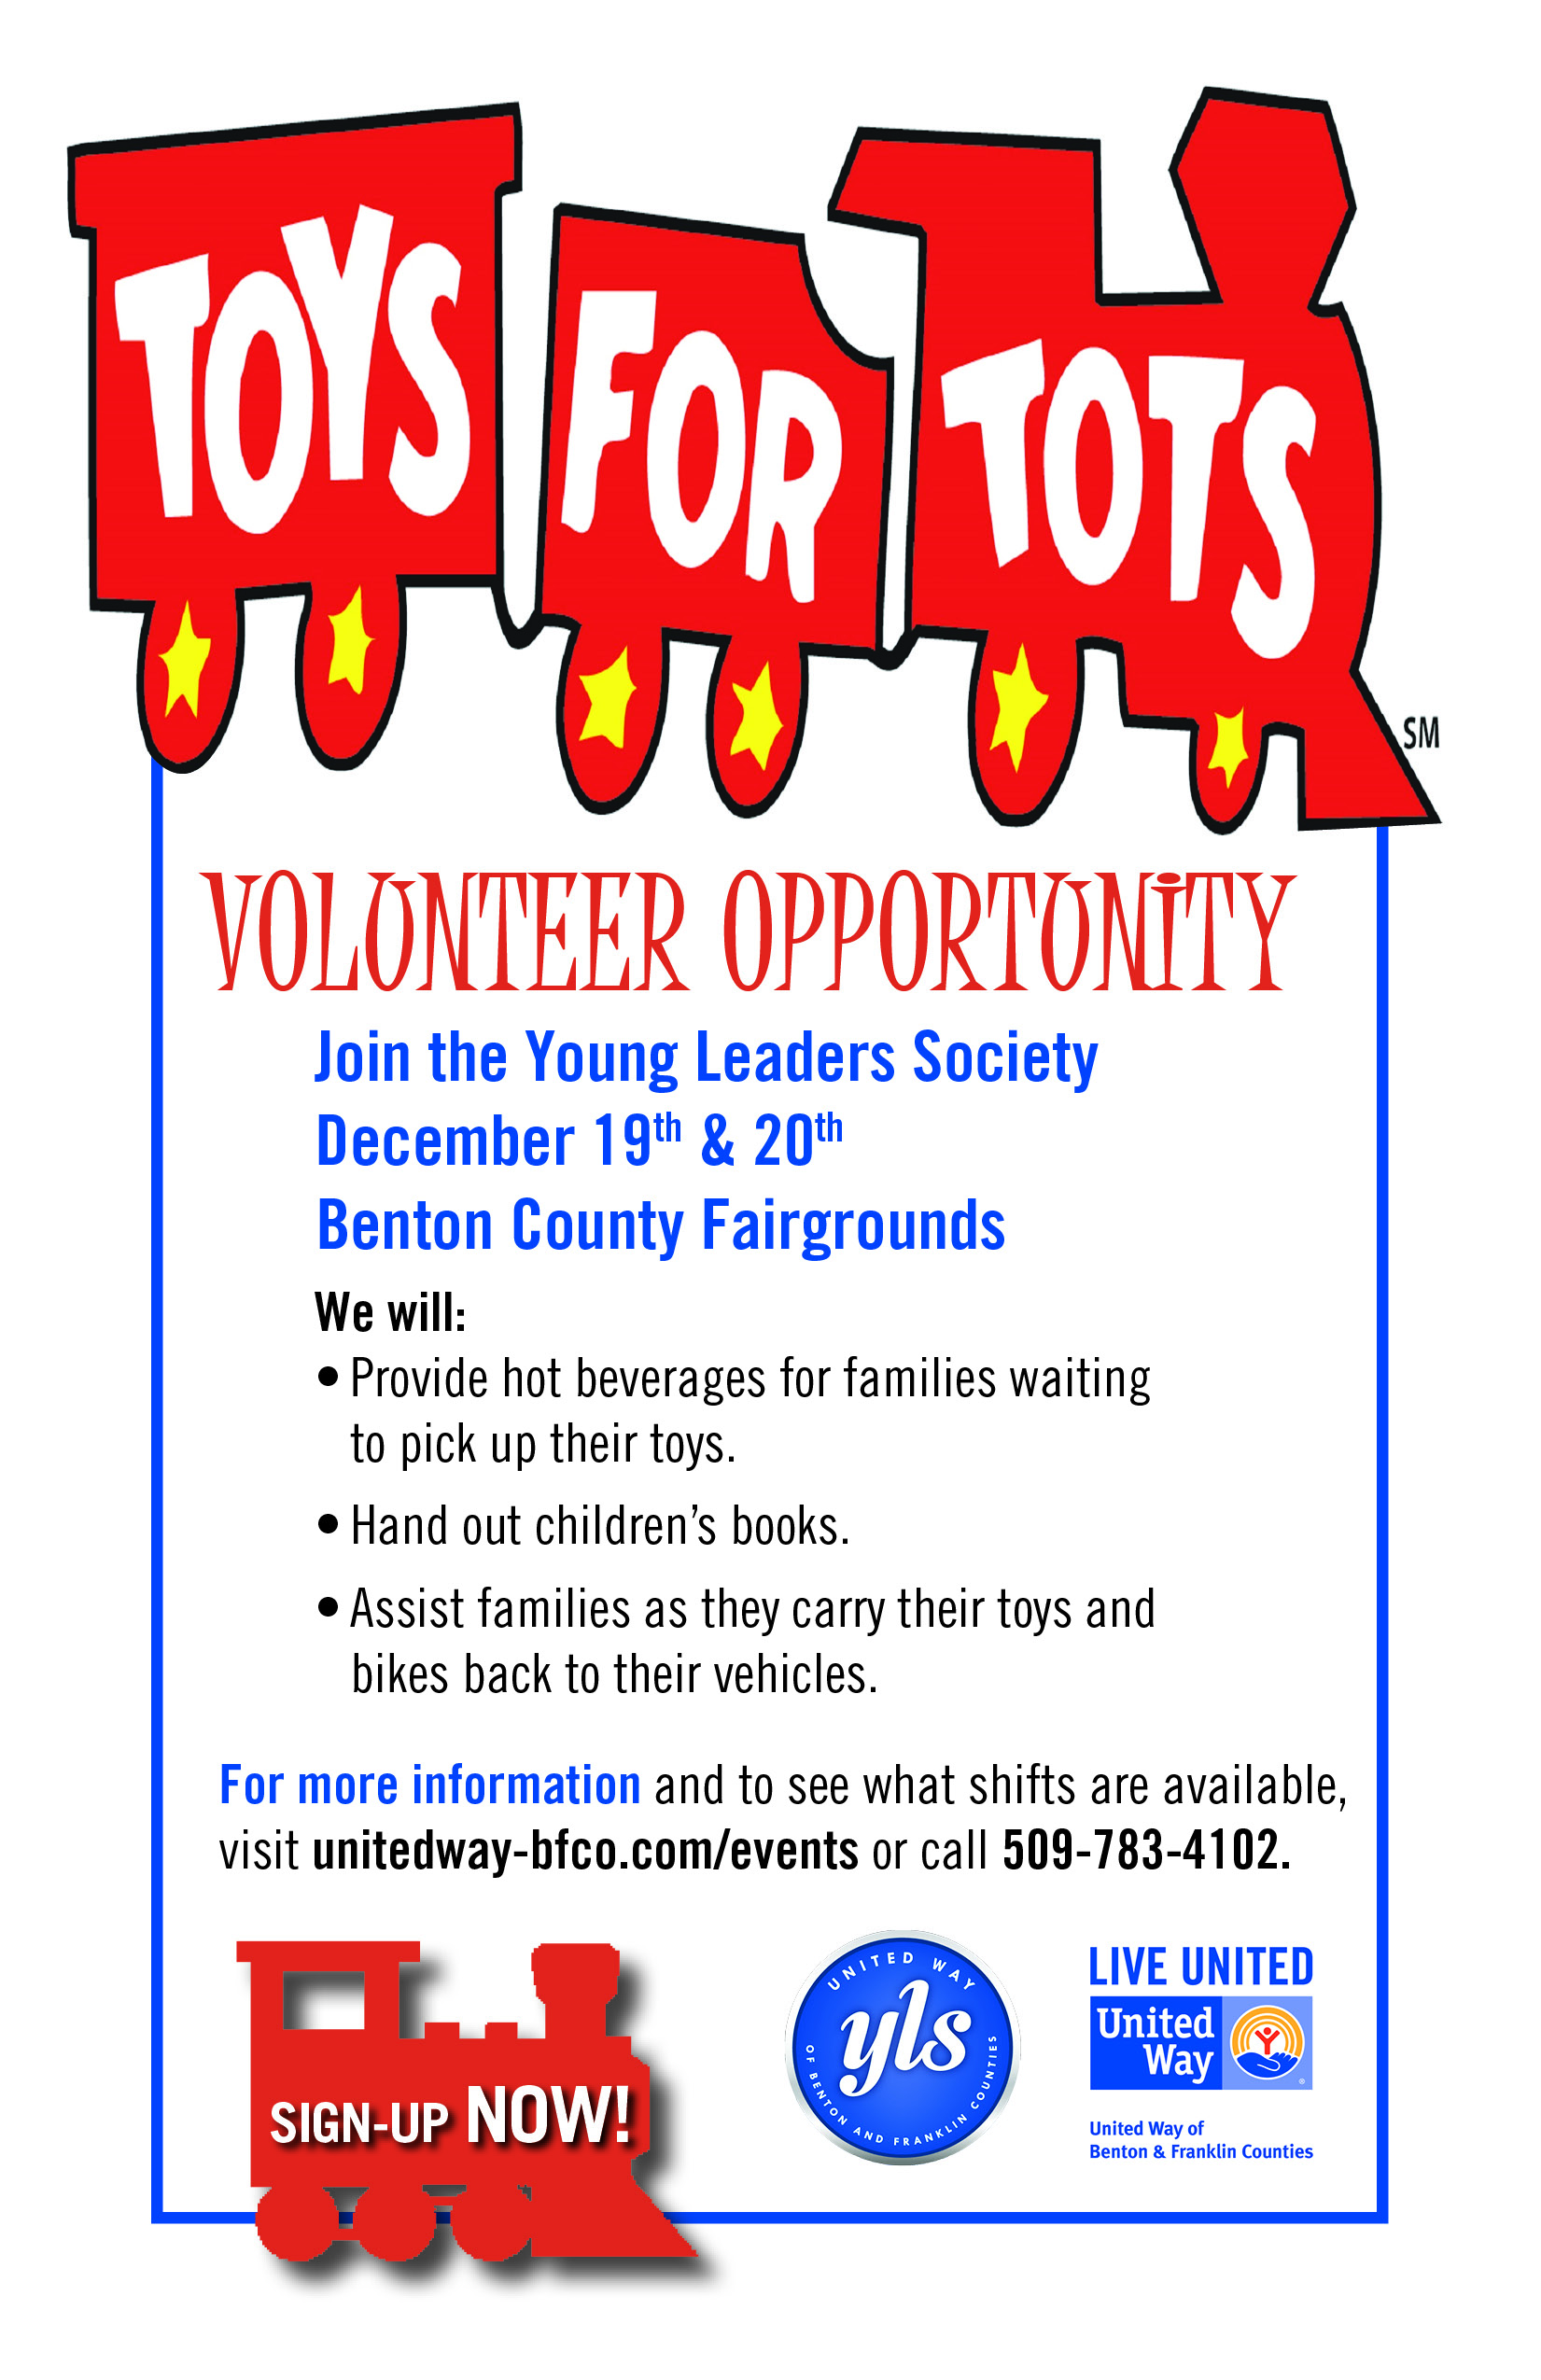 Toys For Tots Application : Yls toys for tots volunteer project united way of benton